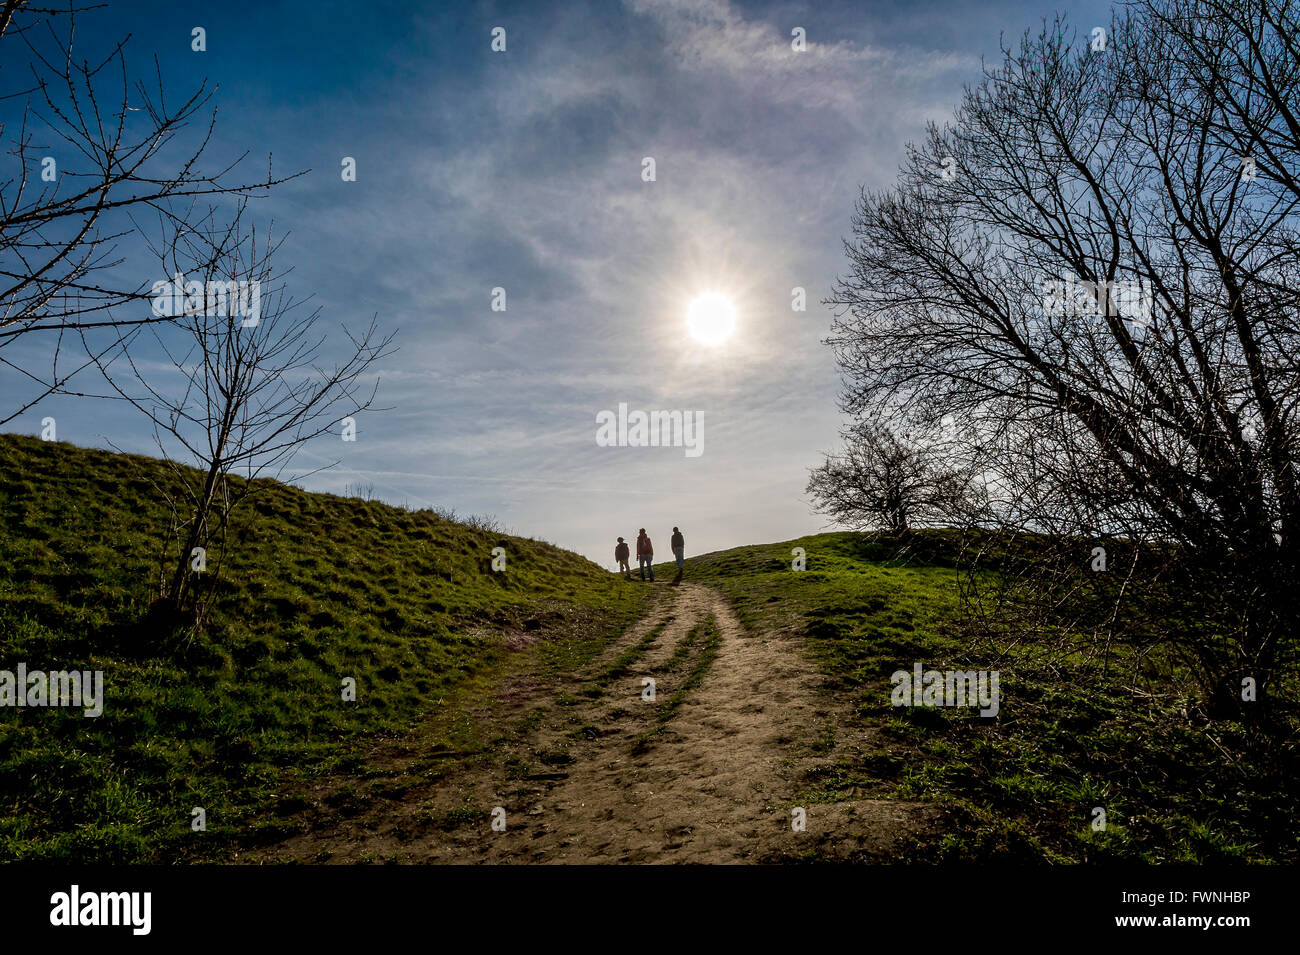 three persons in contra light going on the way in spring country side apart lens - Stock Image